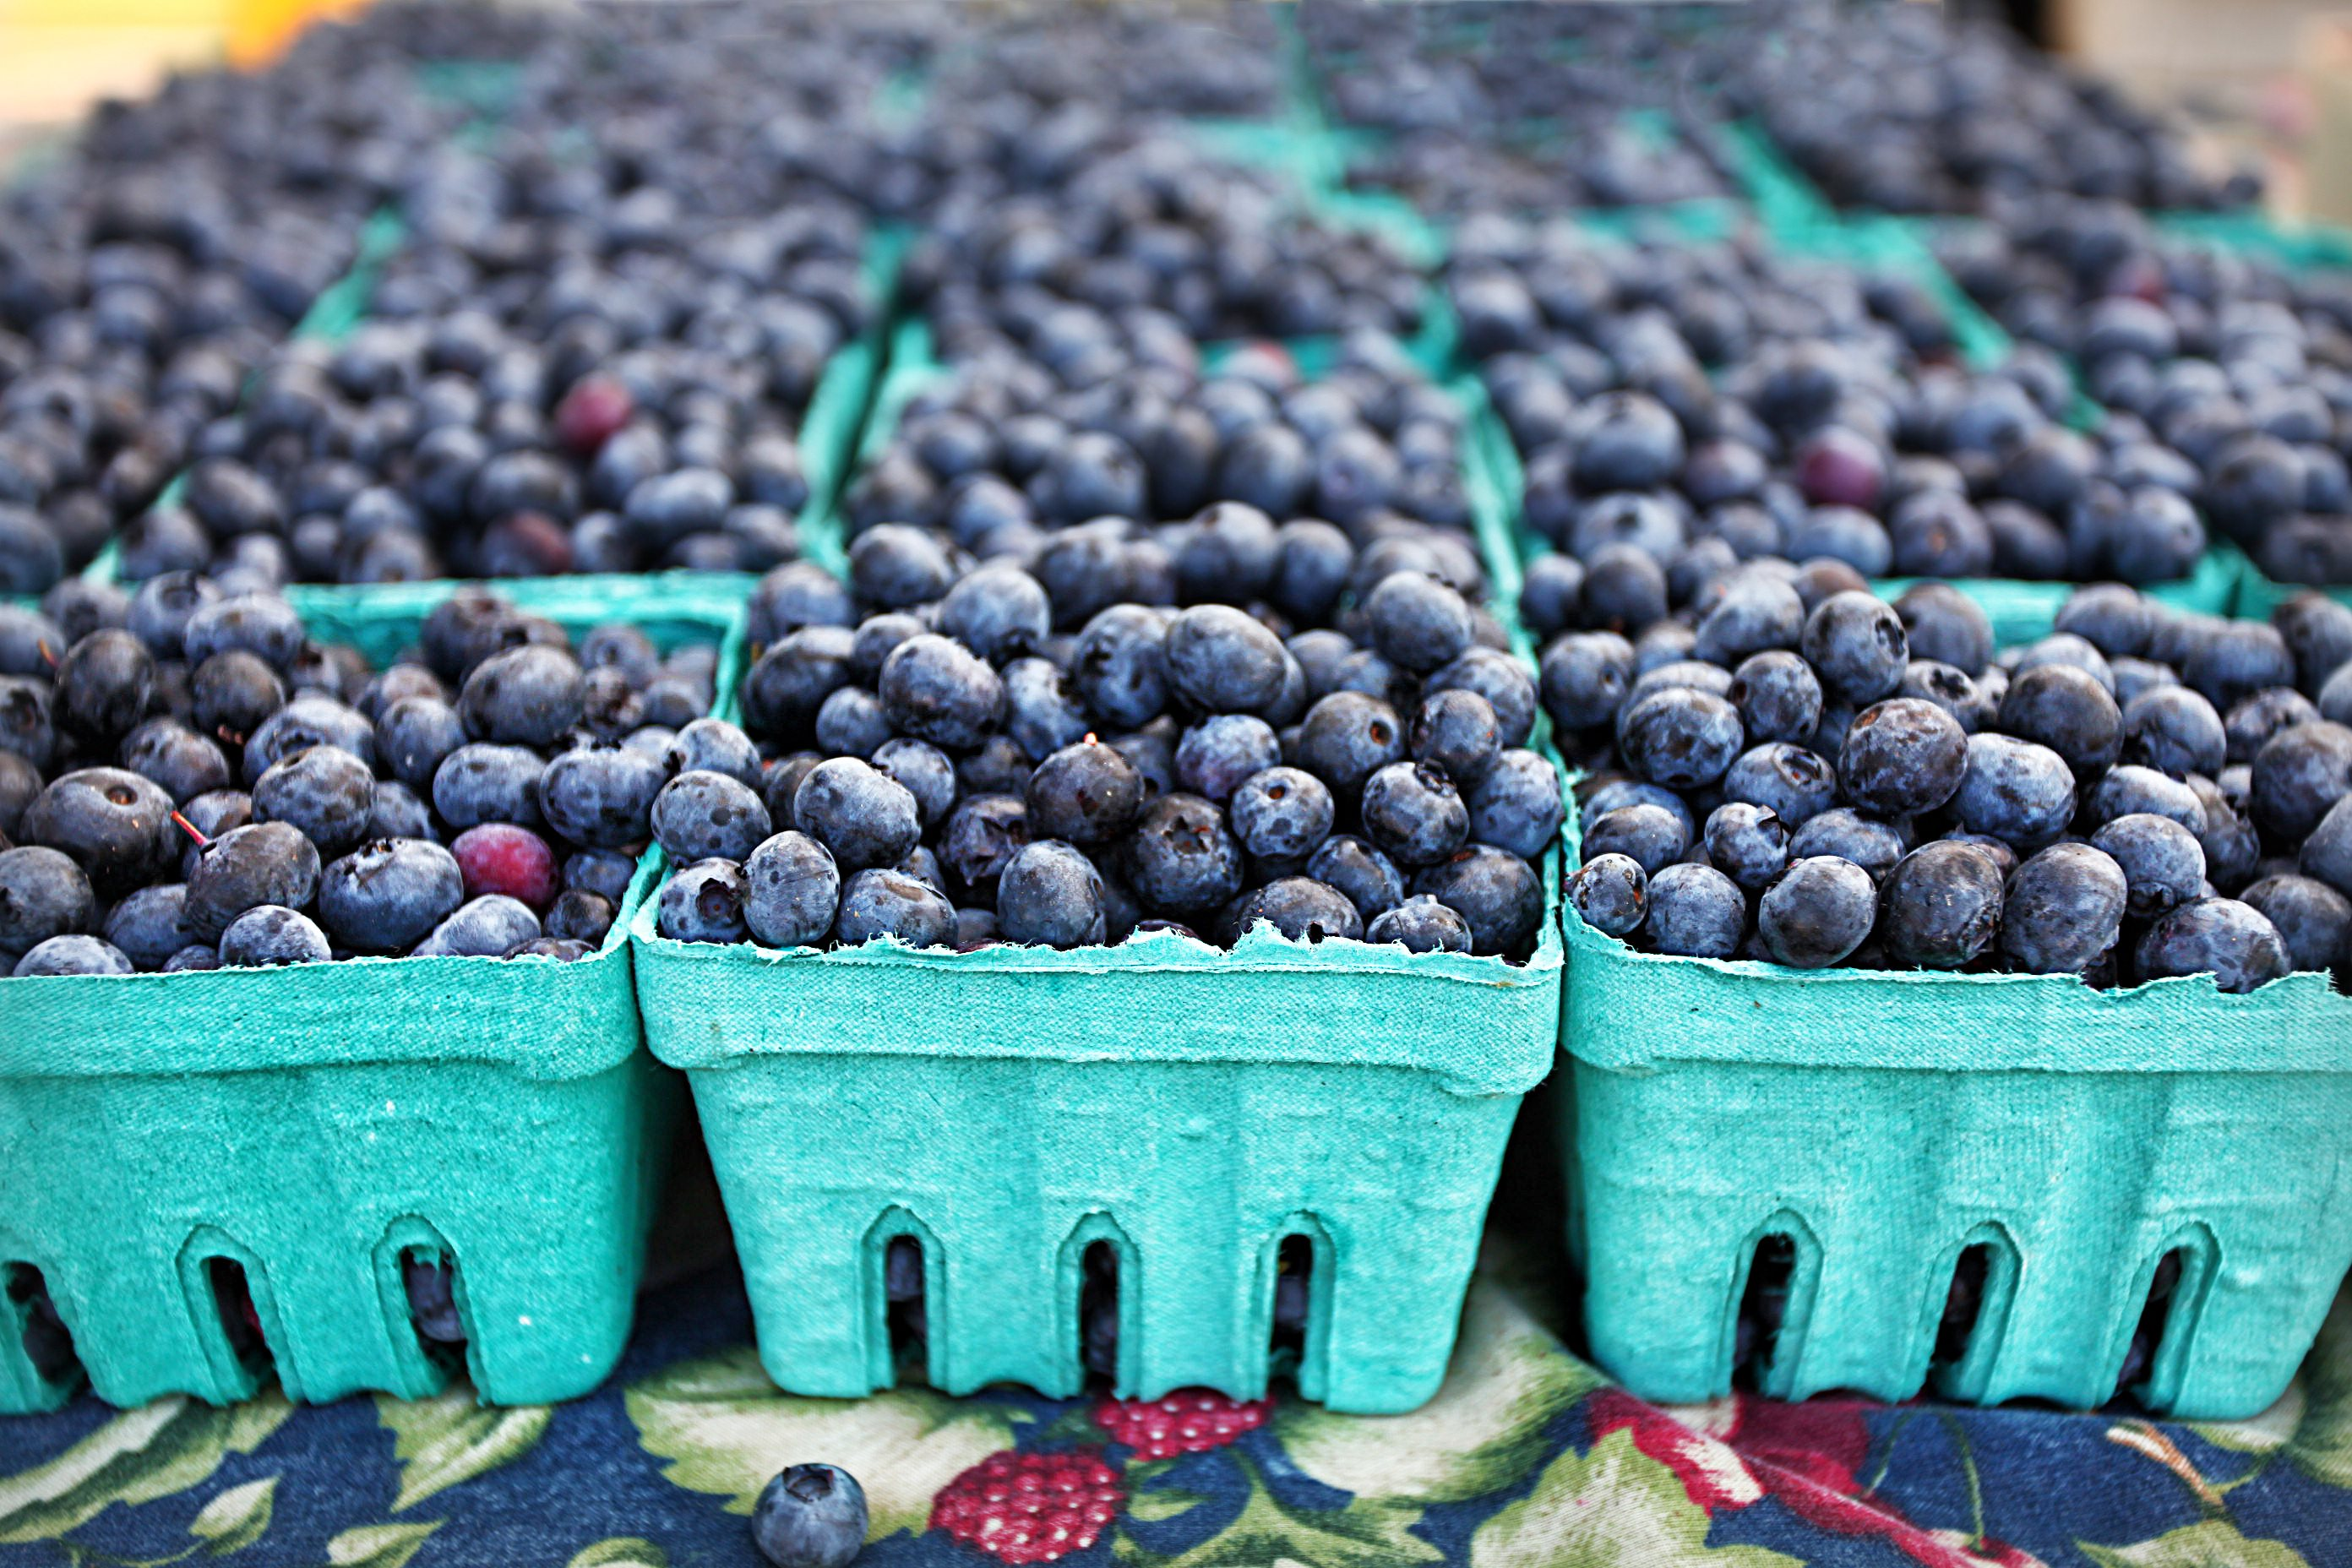 Old River Road BlueBerry Farm